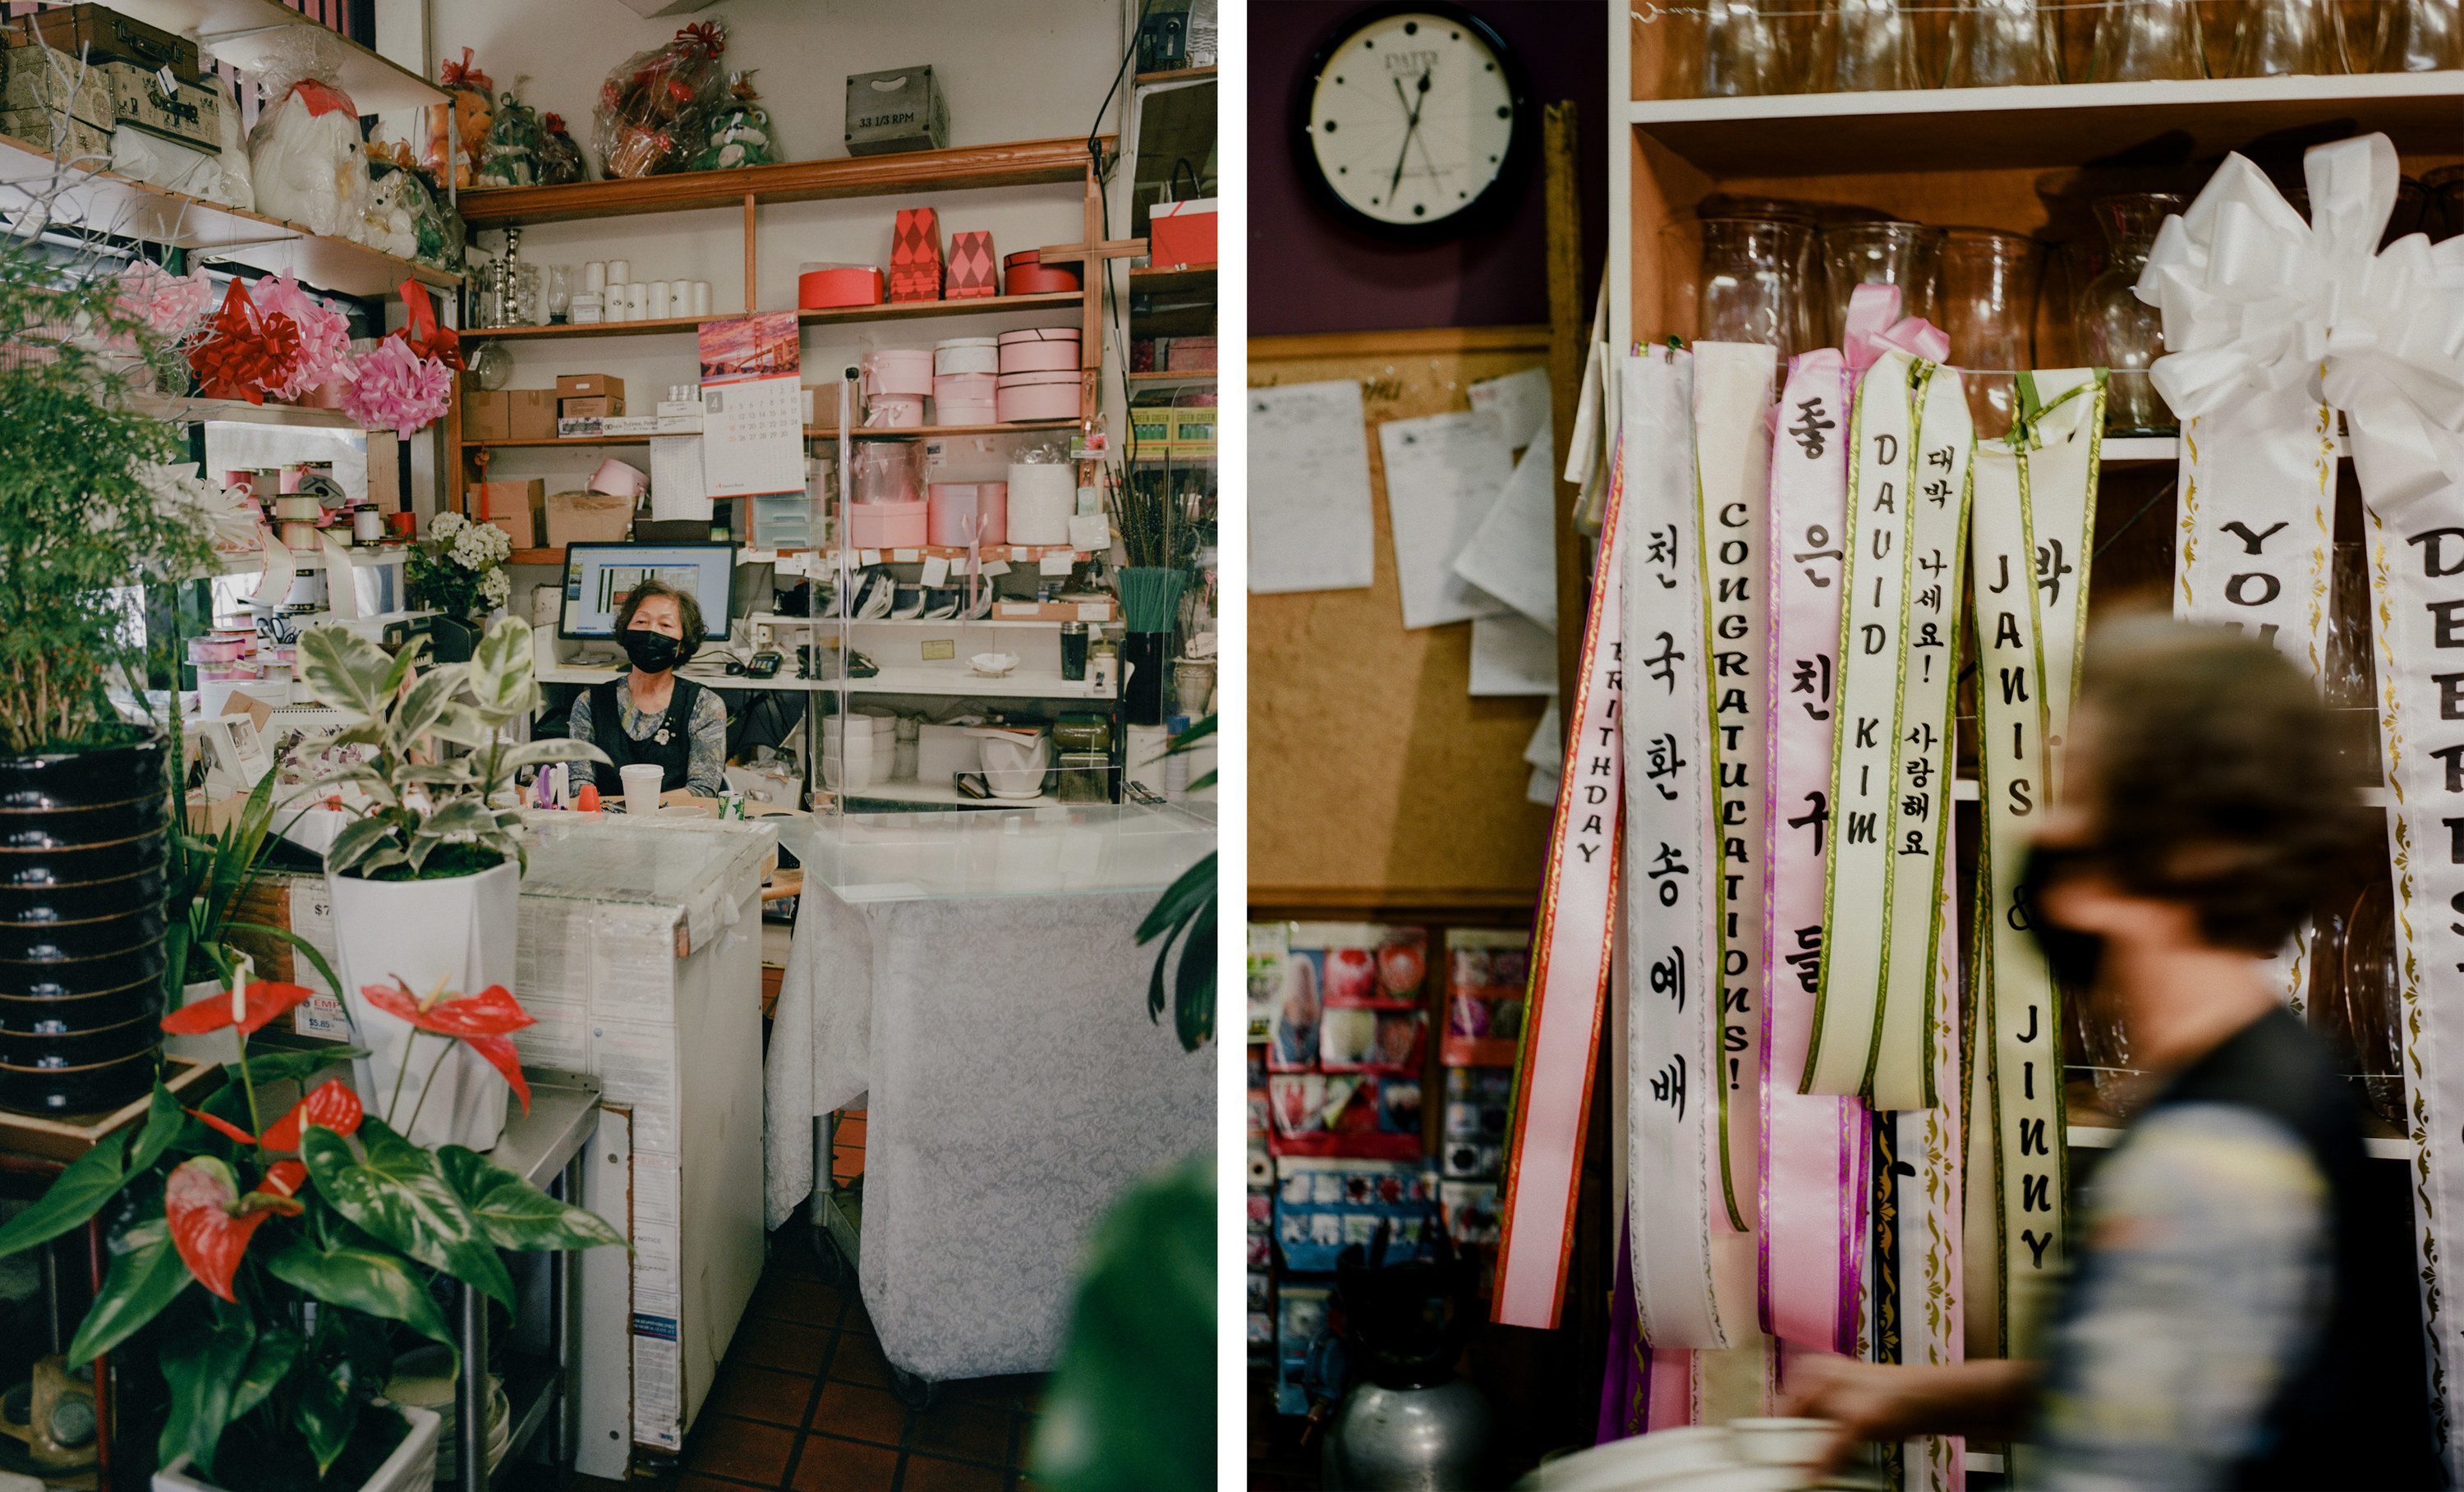 Left, a woman in her florist shop, right, banners and birthday signs in Korean